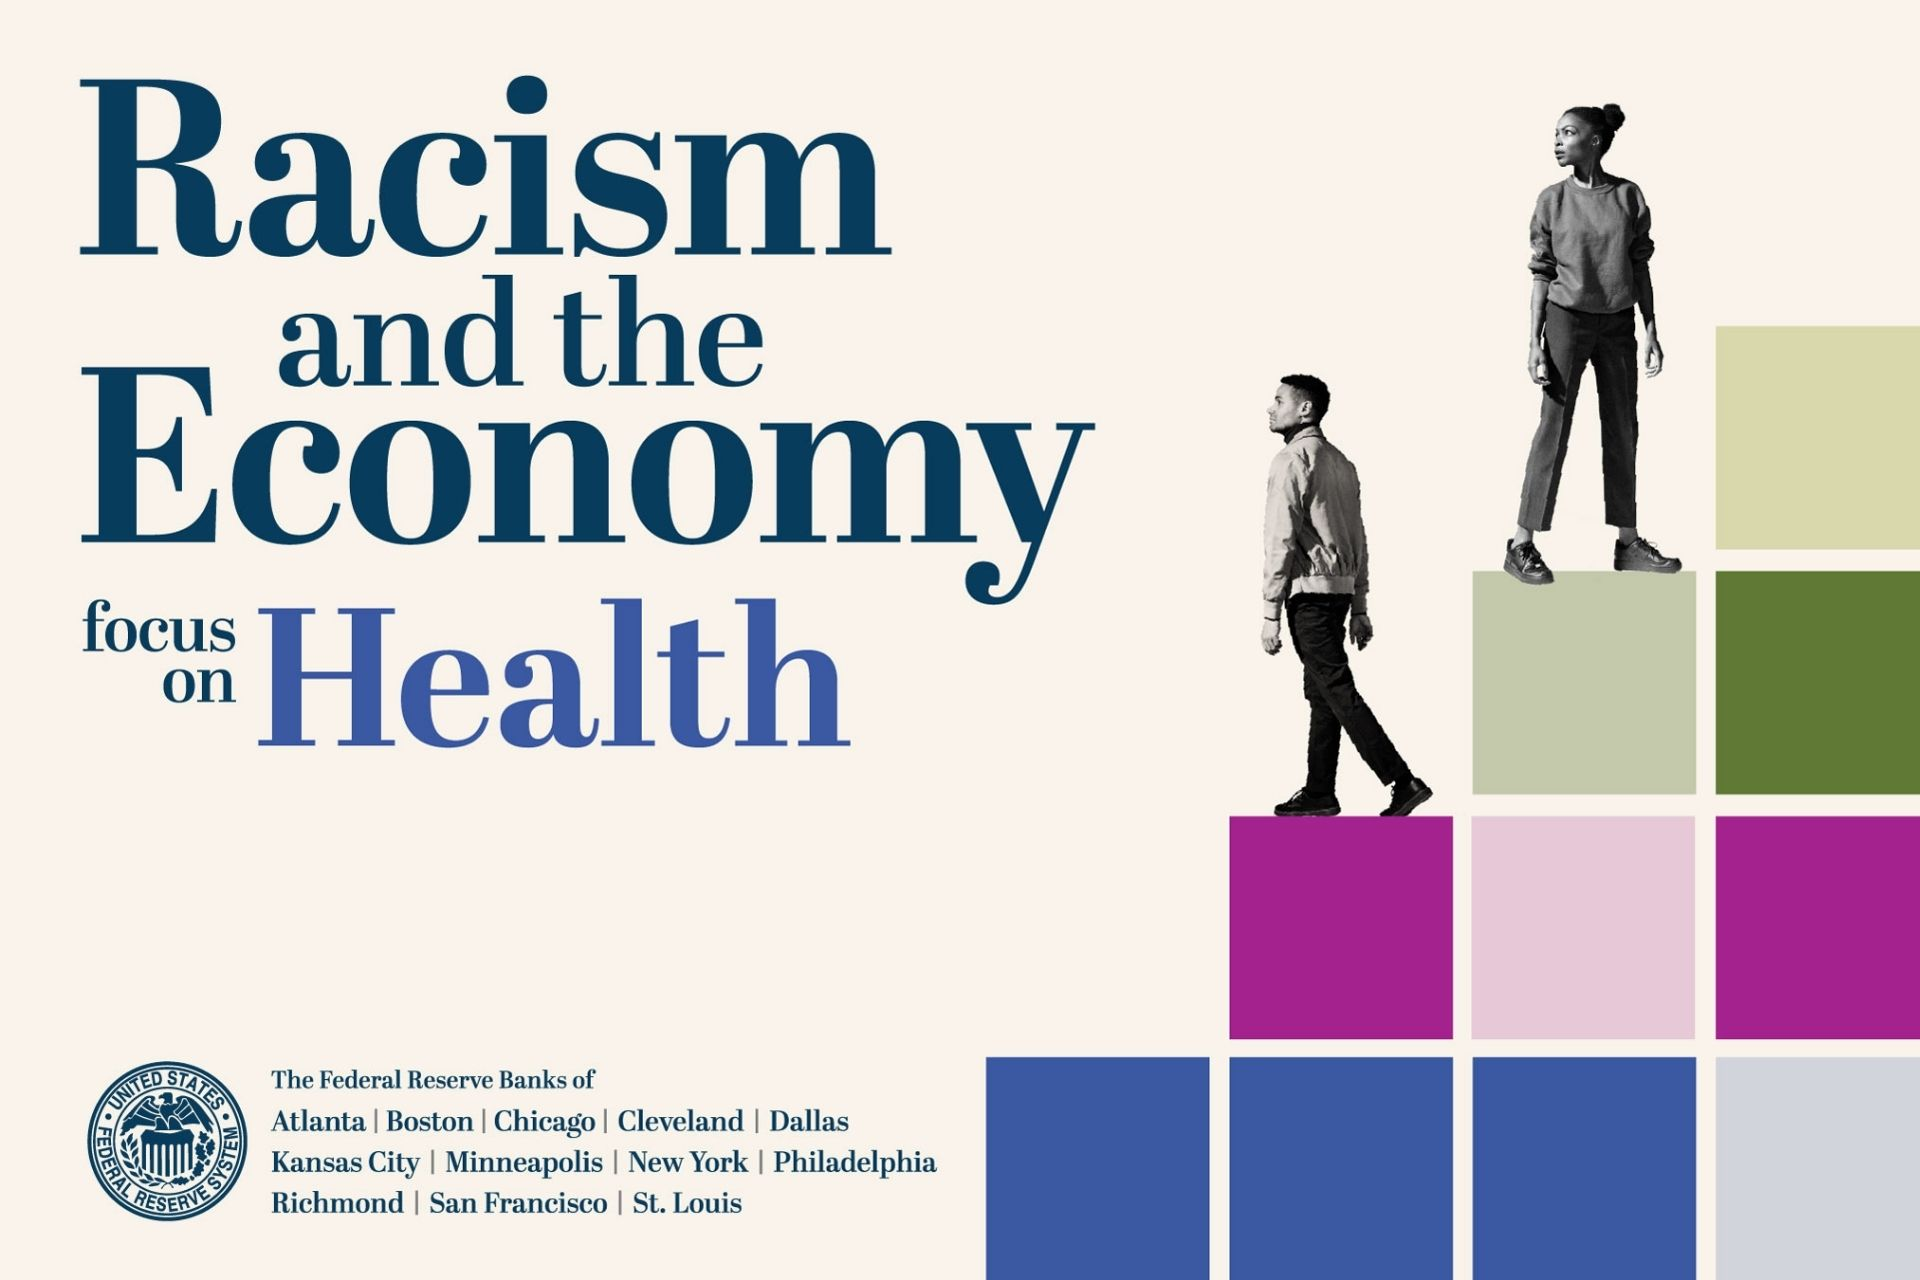 Racism and the Economy: Focus on Health